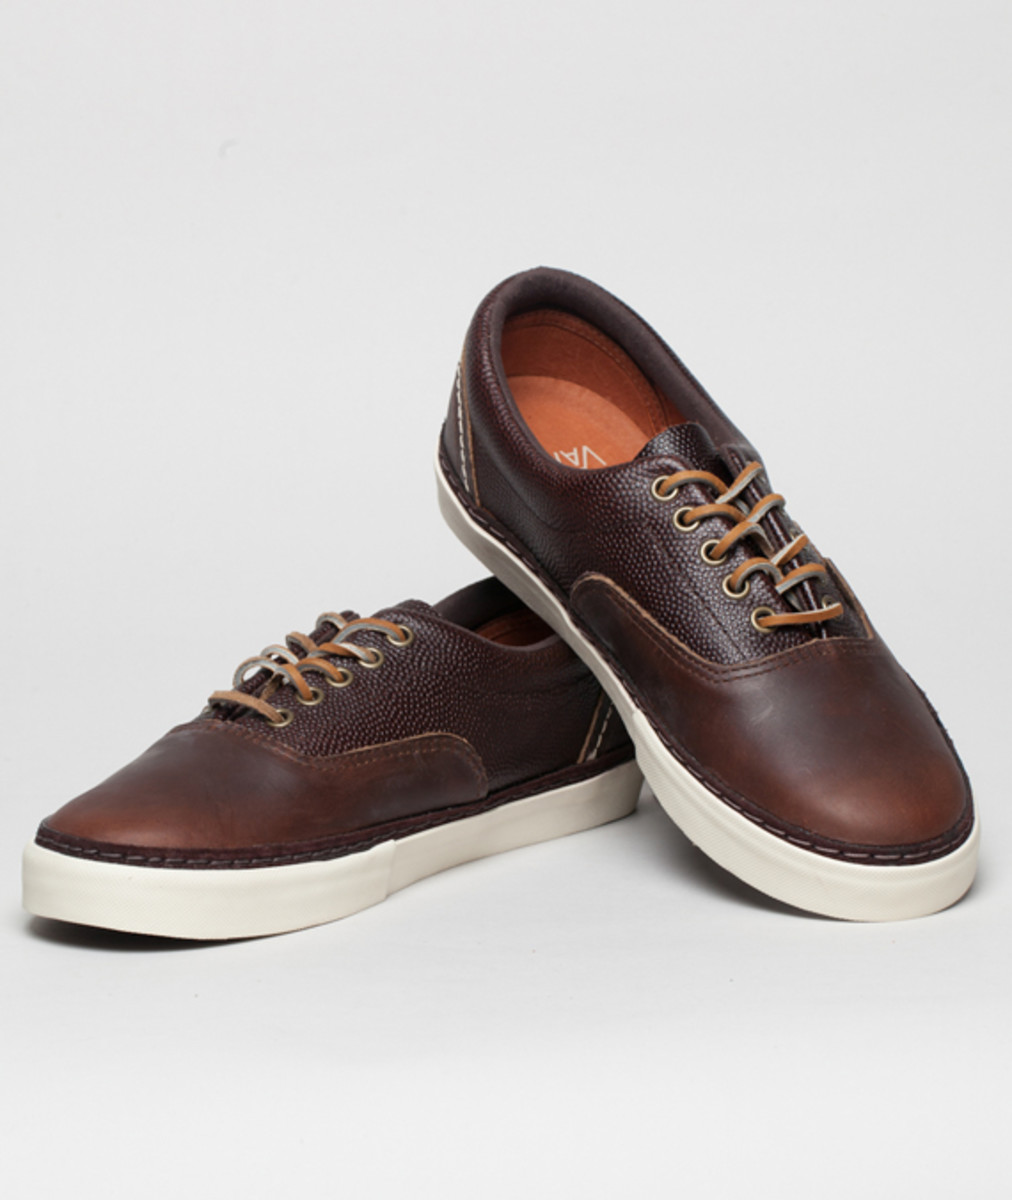 horween-leather-vans-era-hw-lx-03